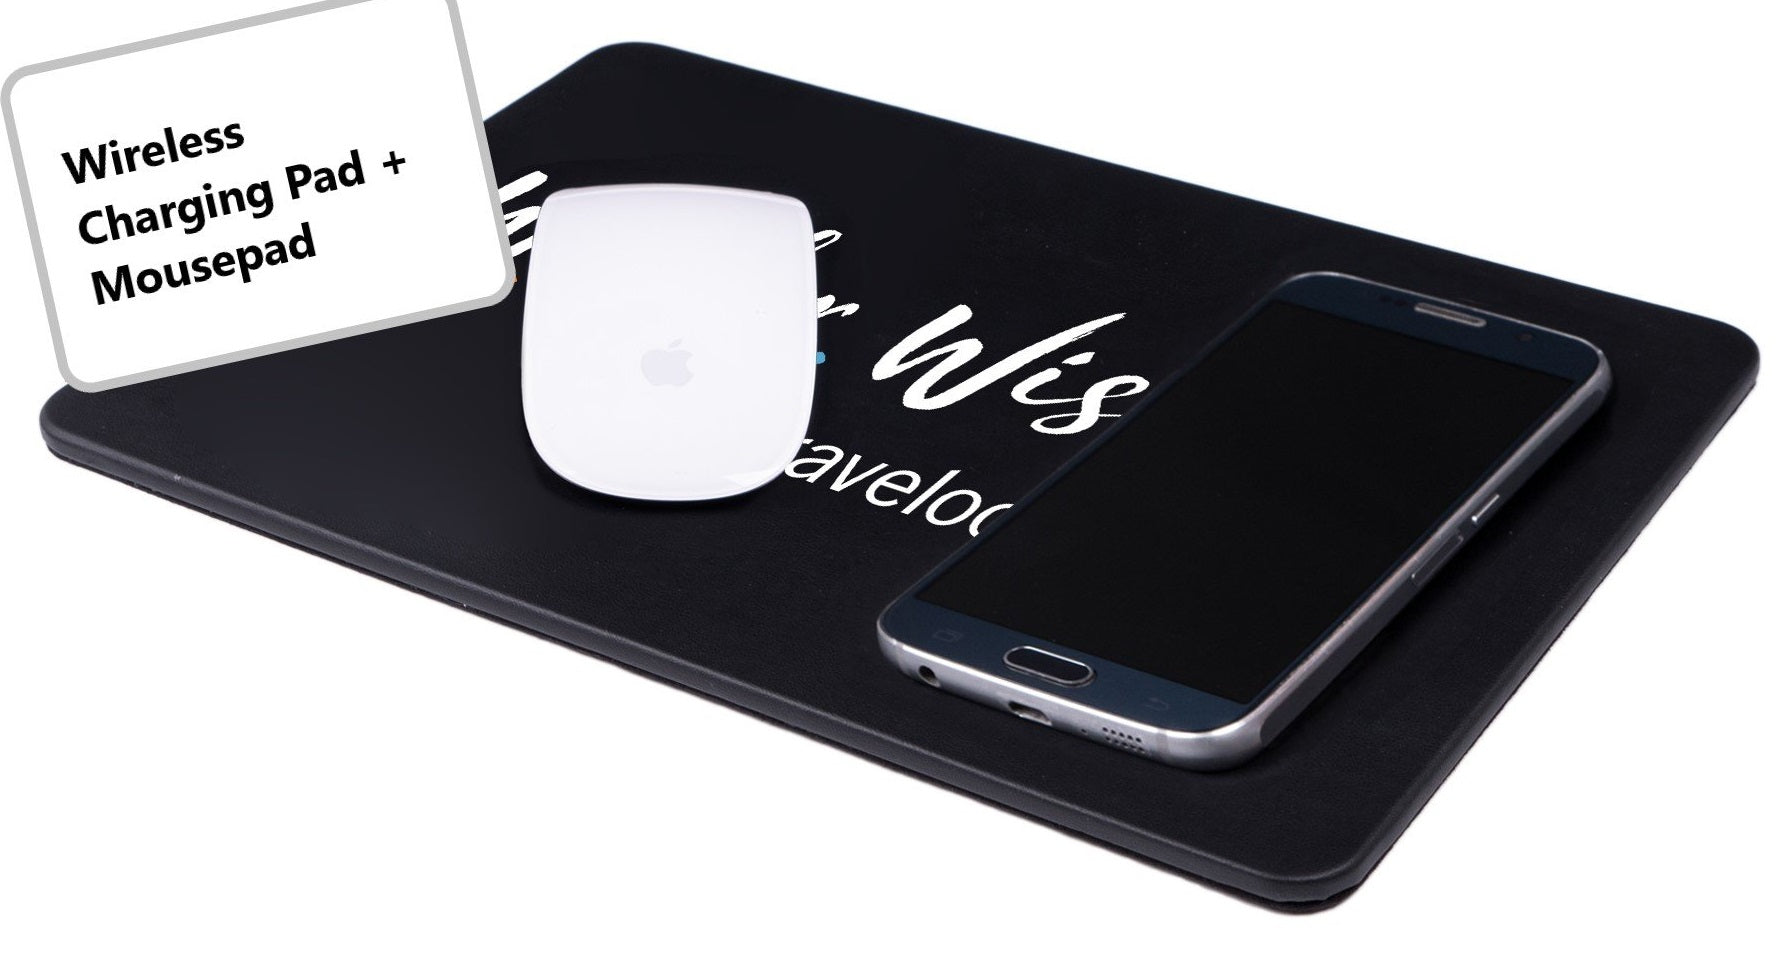 branded wireless charging mouse pad